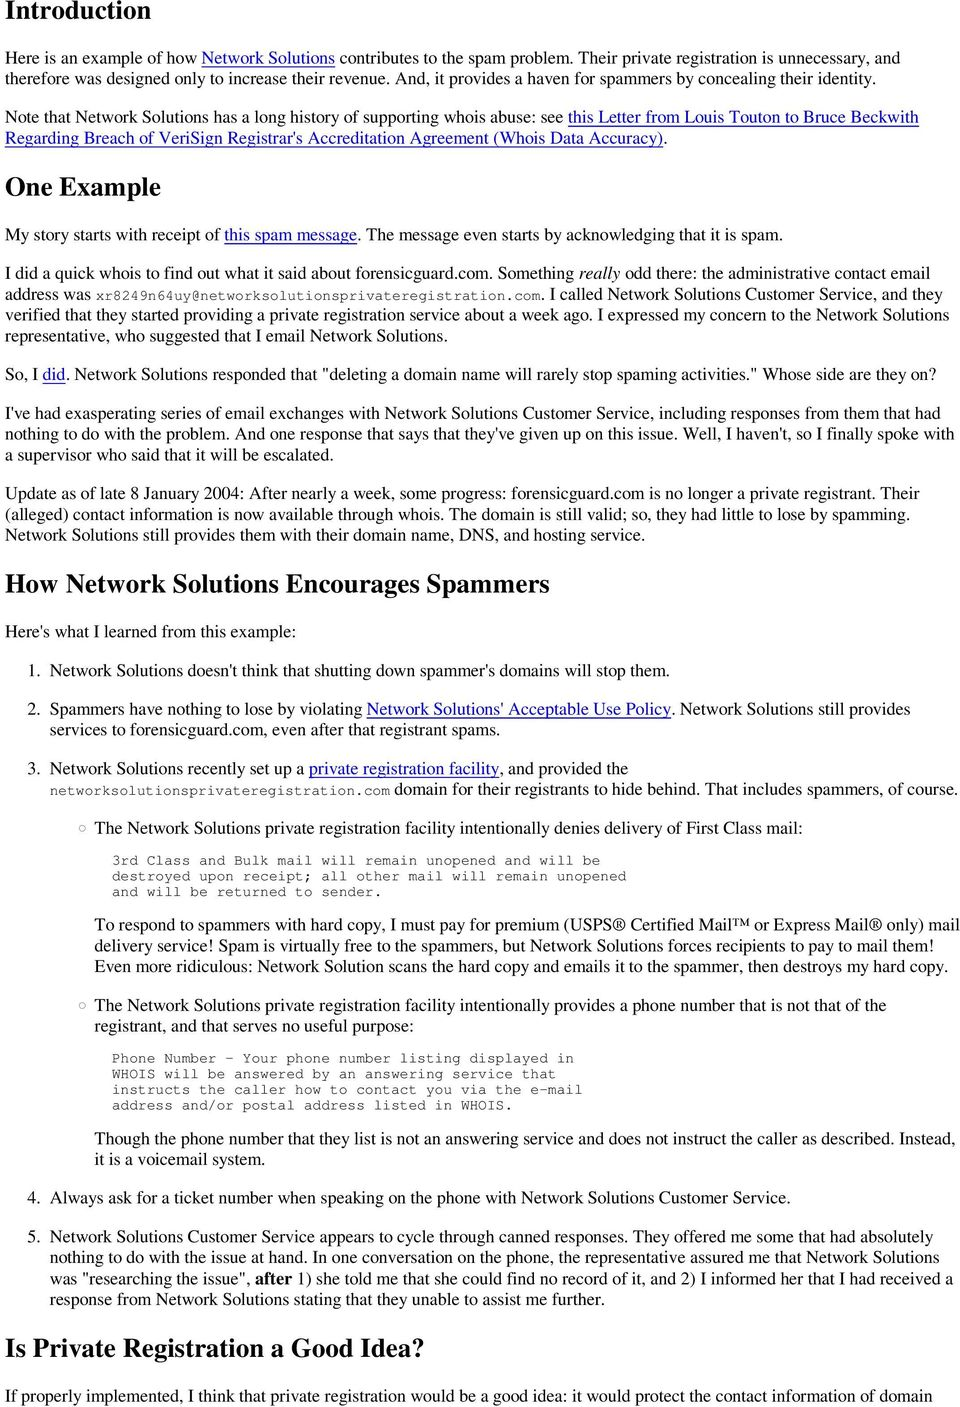 Note that Network Solutions has a long history of supporting whois abuse: see this Letter from Louis Touton to Bruce Beckwith Regarding Breach of VeriSign Registrar's Accreditation Agreement (Whois